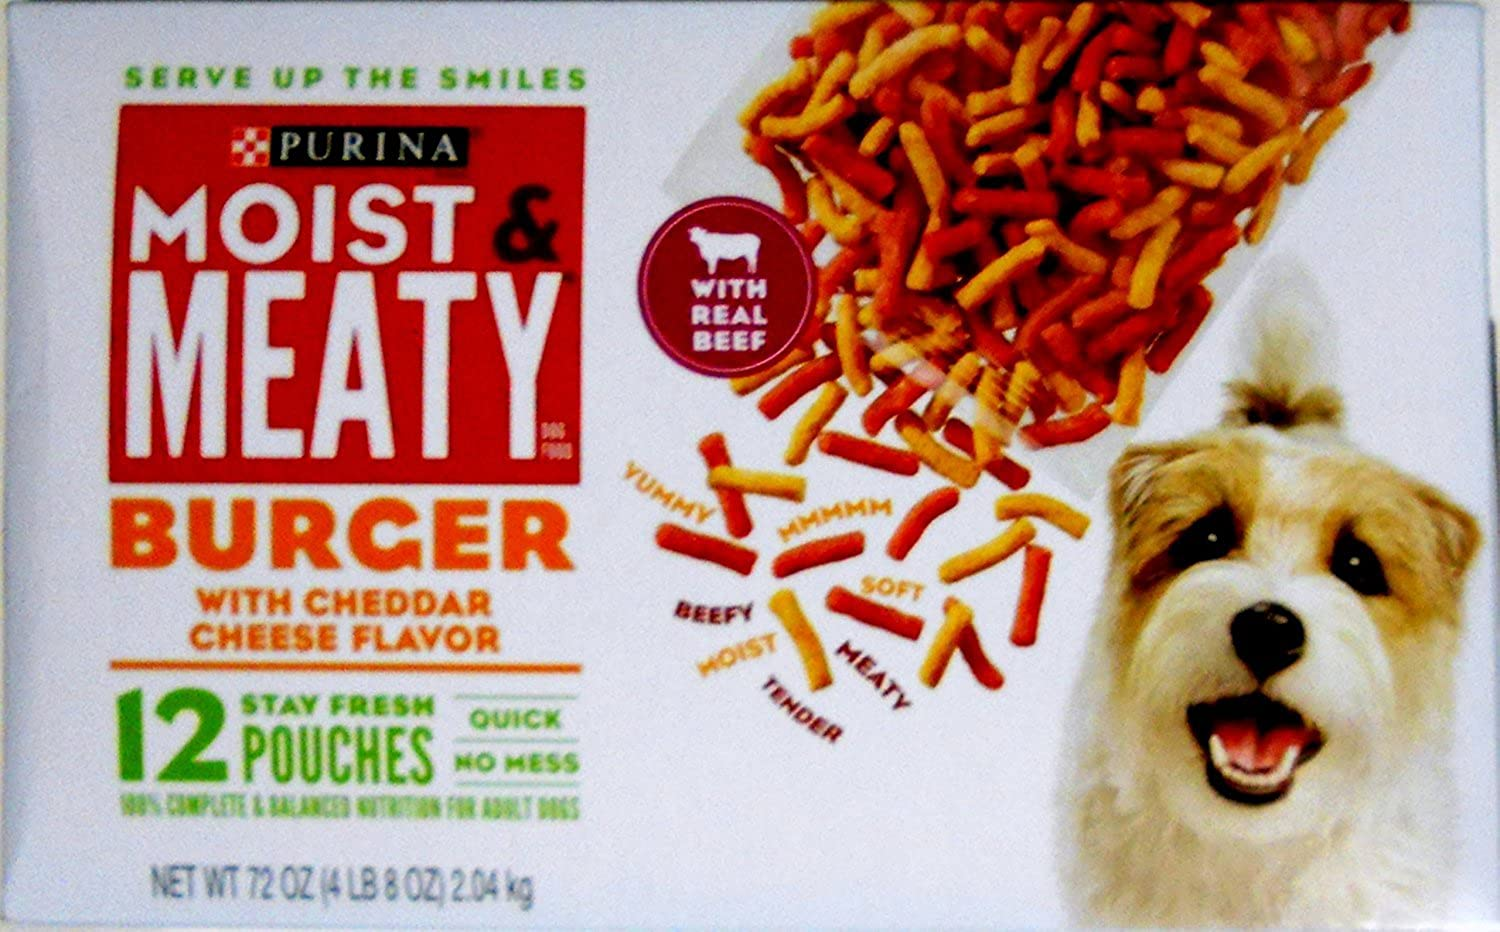 Purina Moist & Meaty Dog Food Burger With Cheddar Cheese Flavor  12 Ct